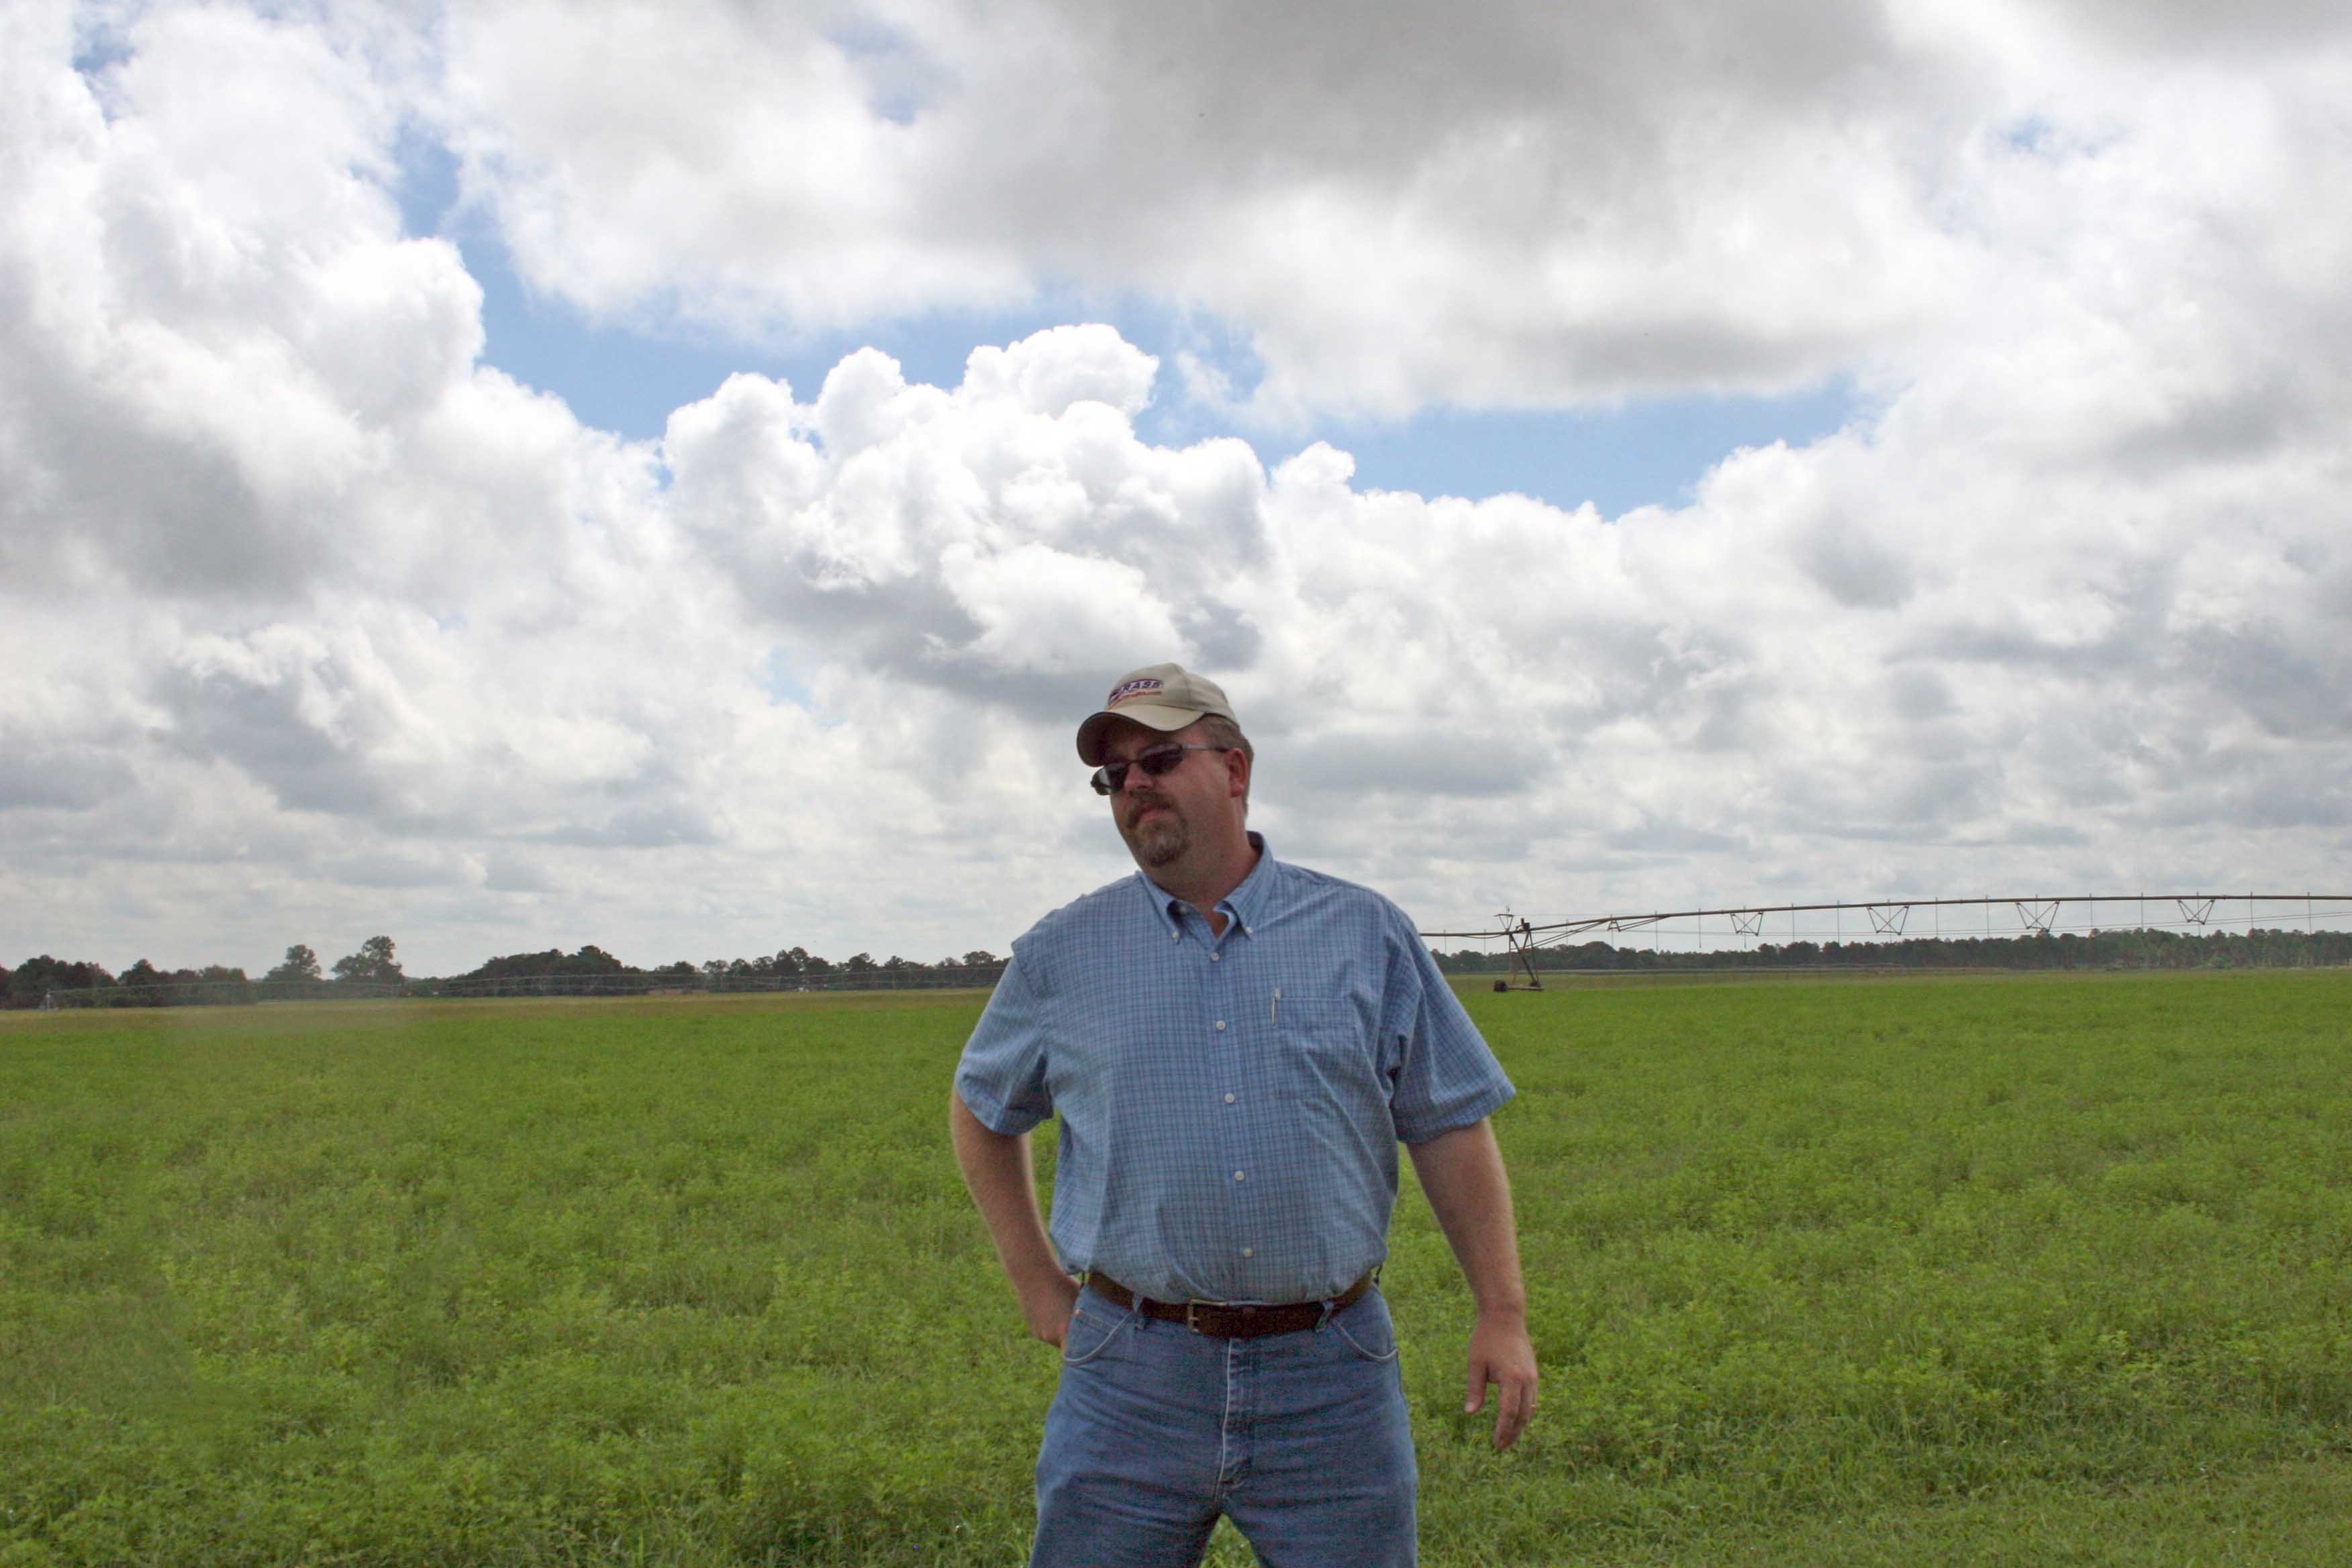 UGA Forage Extension Specialist Dennis Hancock talks about interplanting alfalfa in a bermudagrass pasture at the 2012 Sunbelt Ag Expo Field Day.